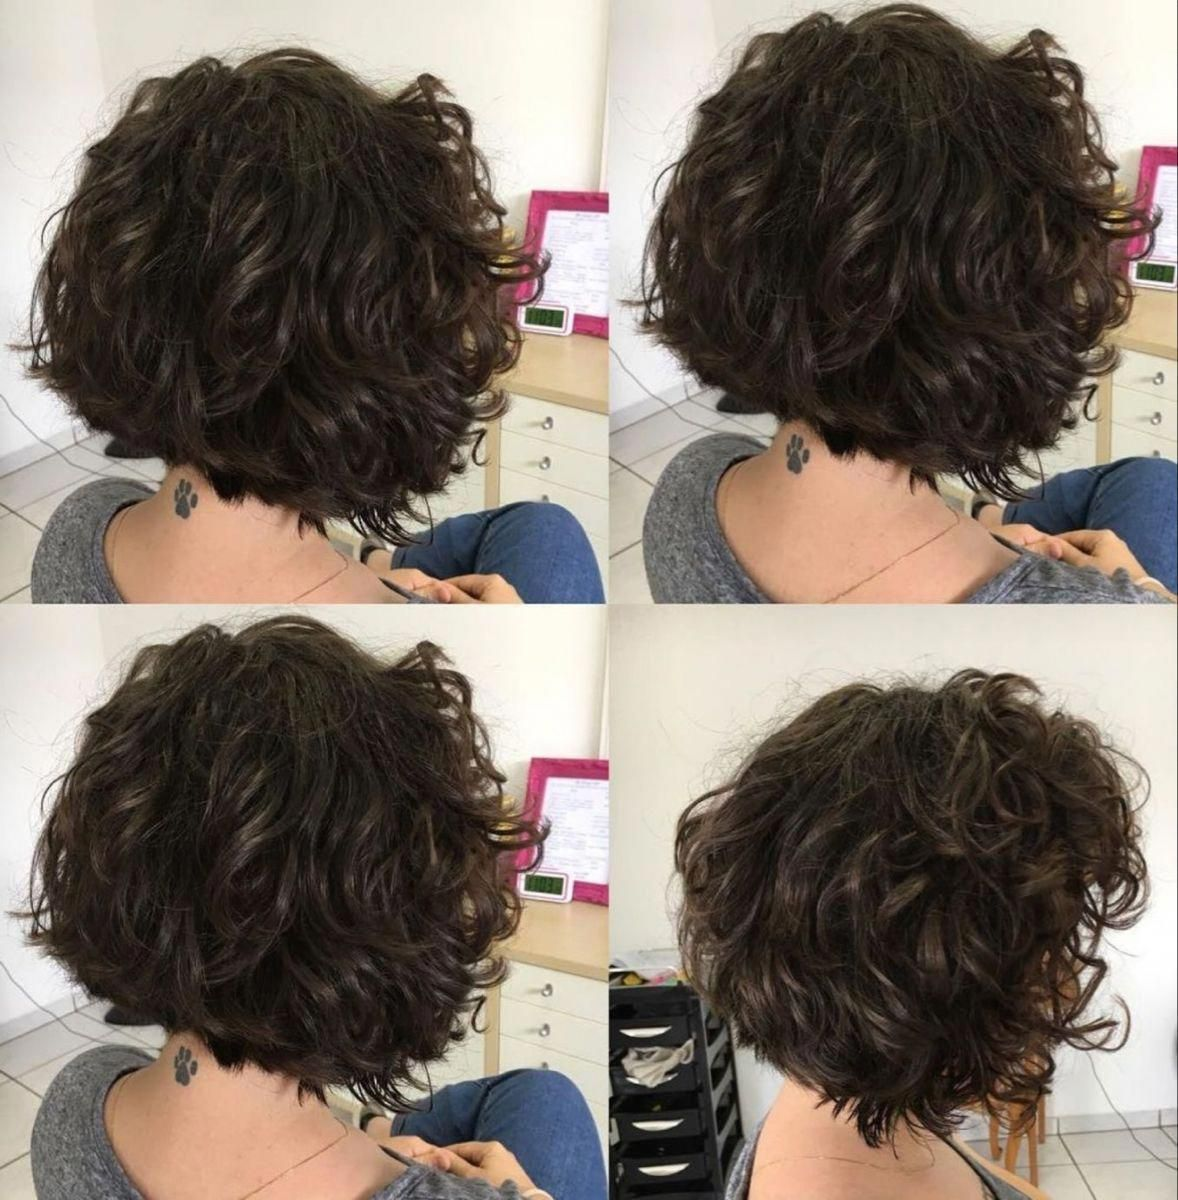 60 Classy Short Haircuts And Hairstyles For Thick Hair In 2020 Hair Styles Curly Hair Styles Naturally Short Hairstyles For Thick Hair